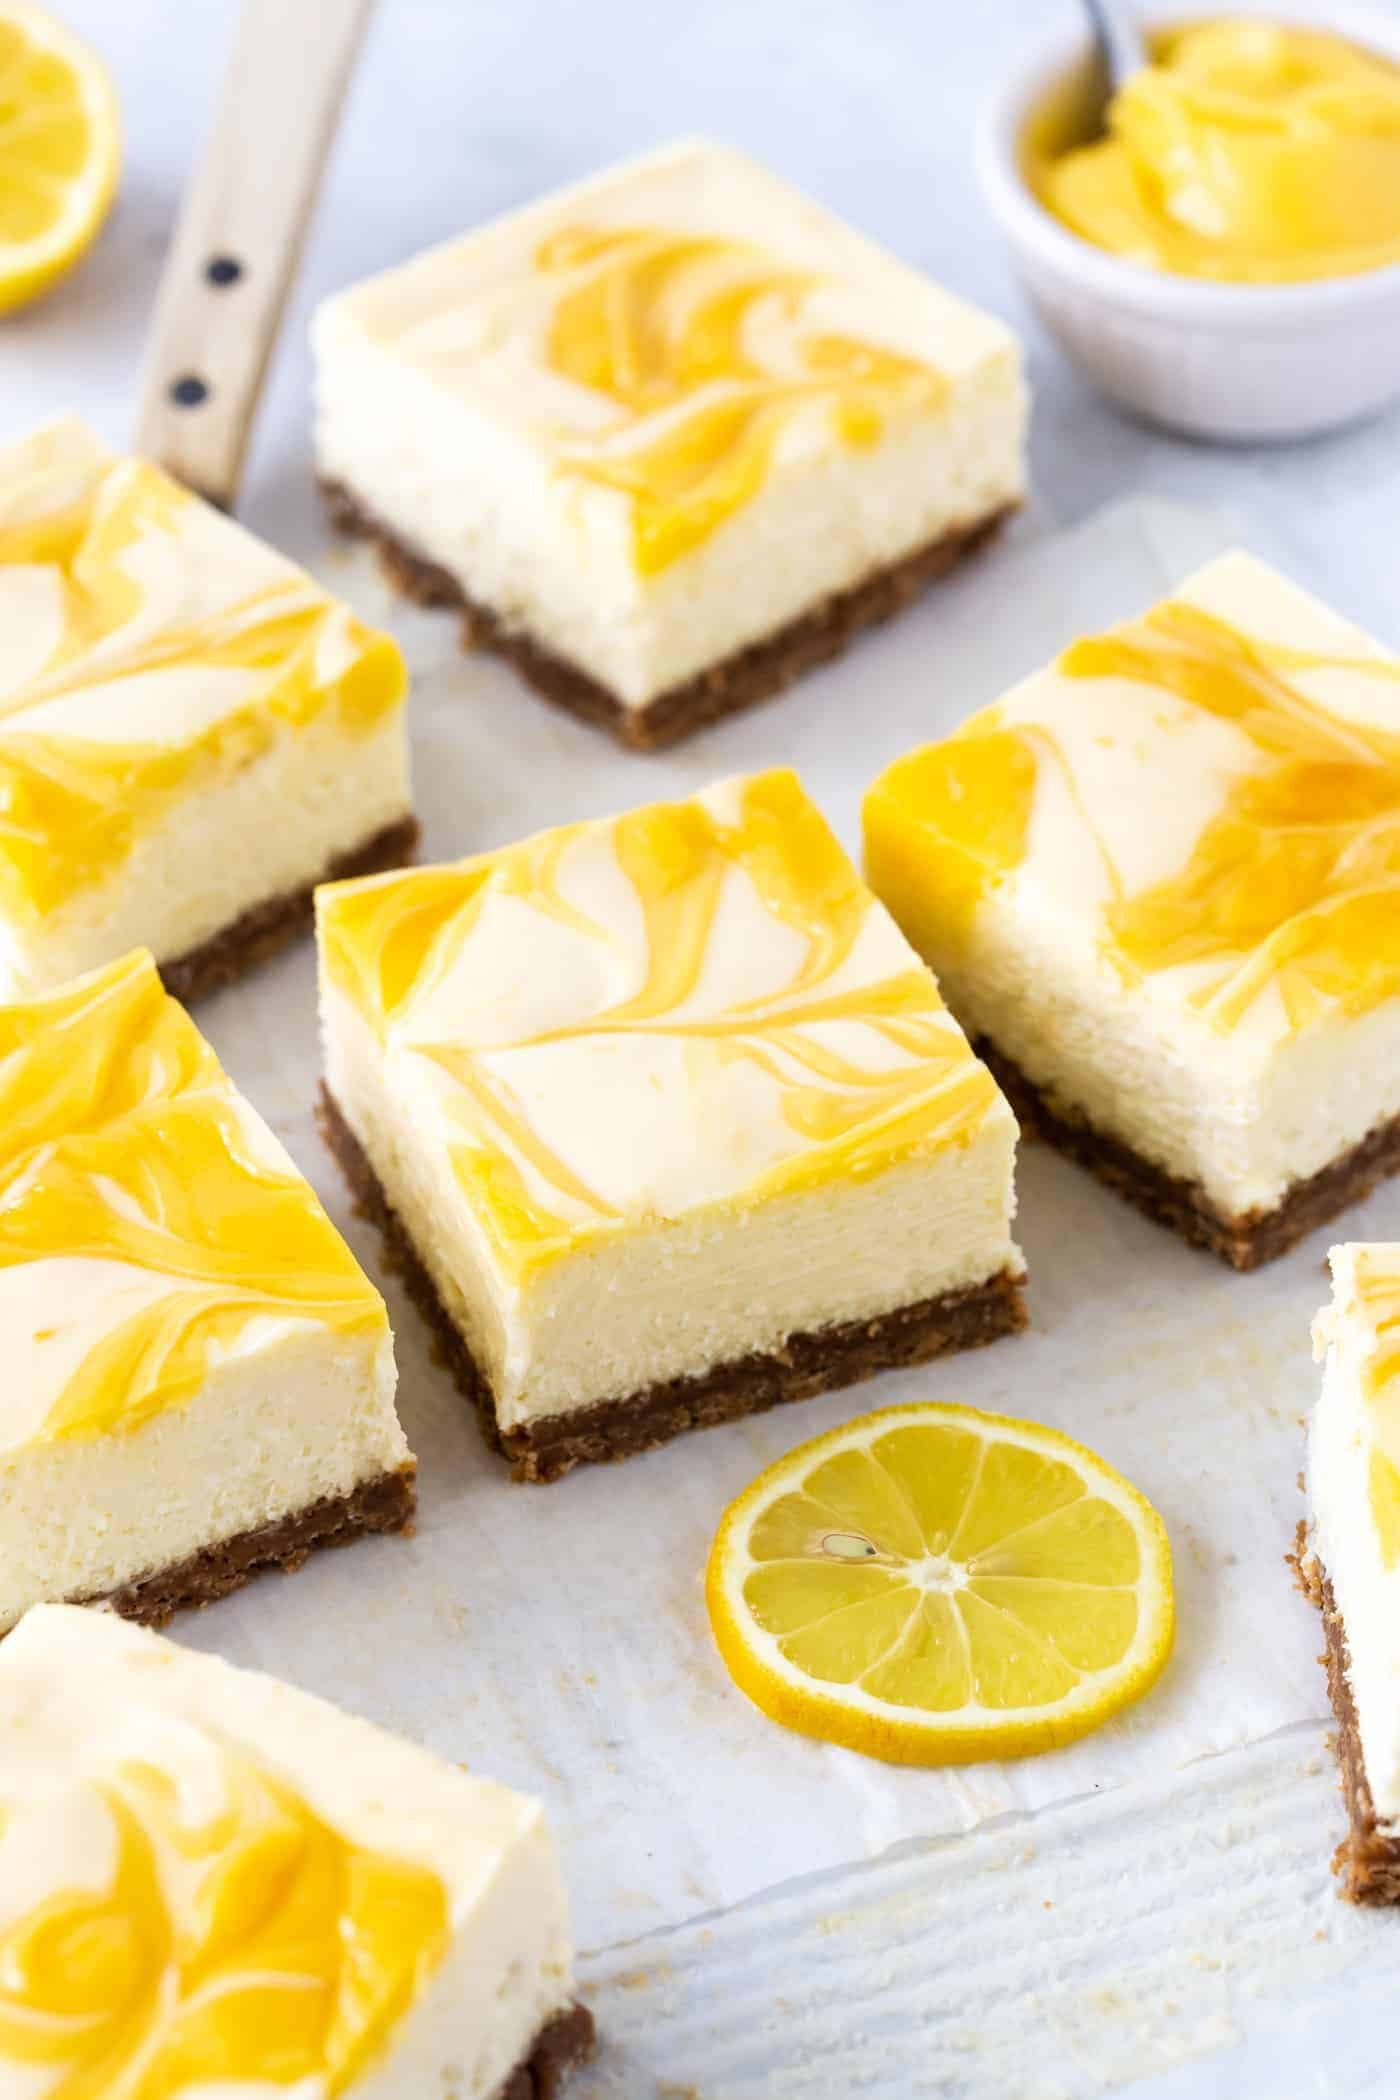 Cut Lemon Cheesecake Bars topped with swirled fresh lemon curd on white parchment paper.